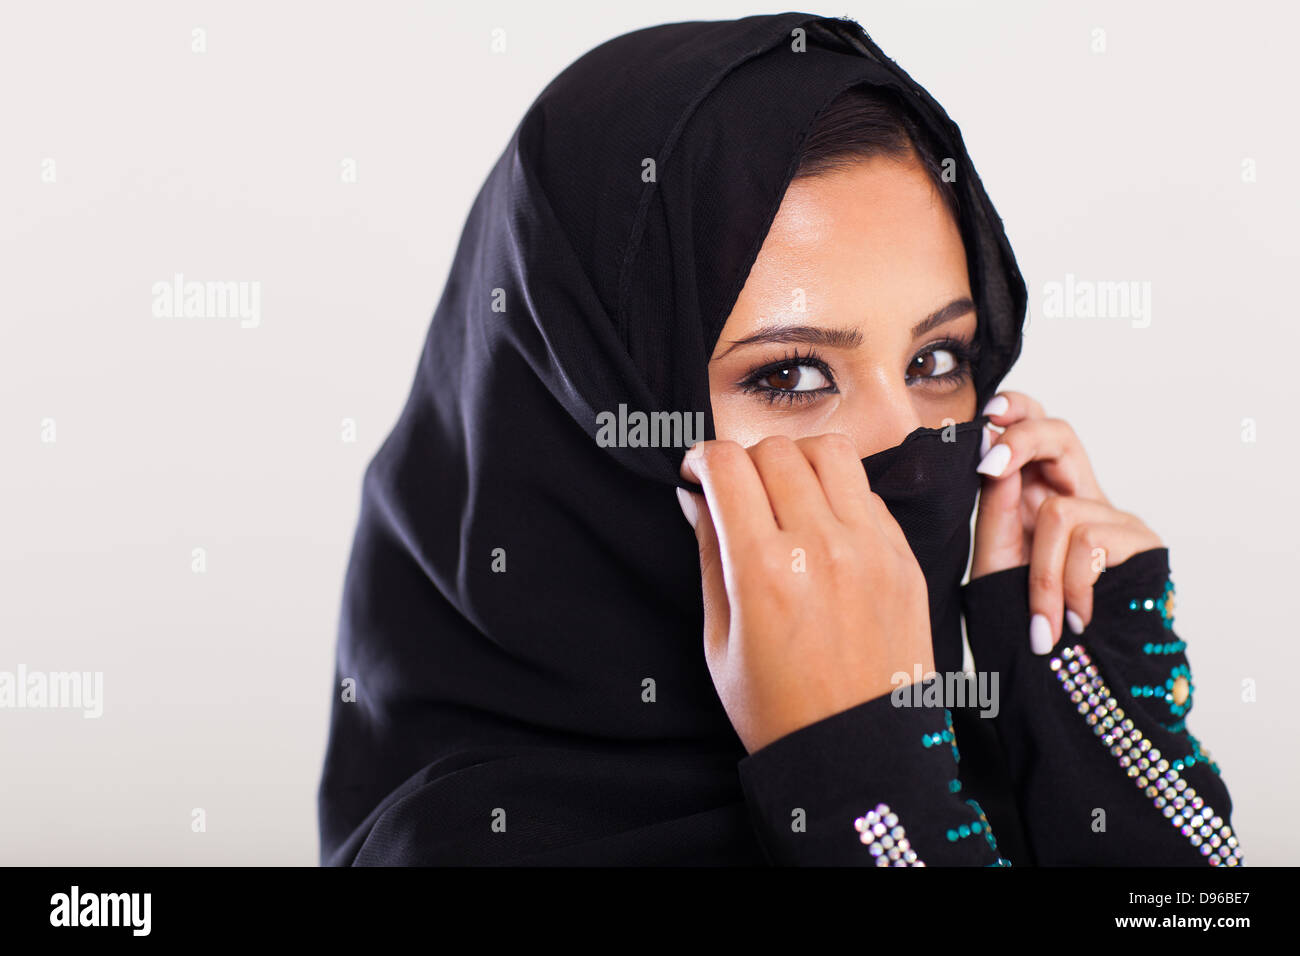 mysterious middle eastern woman closeup portrait Stock Photo